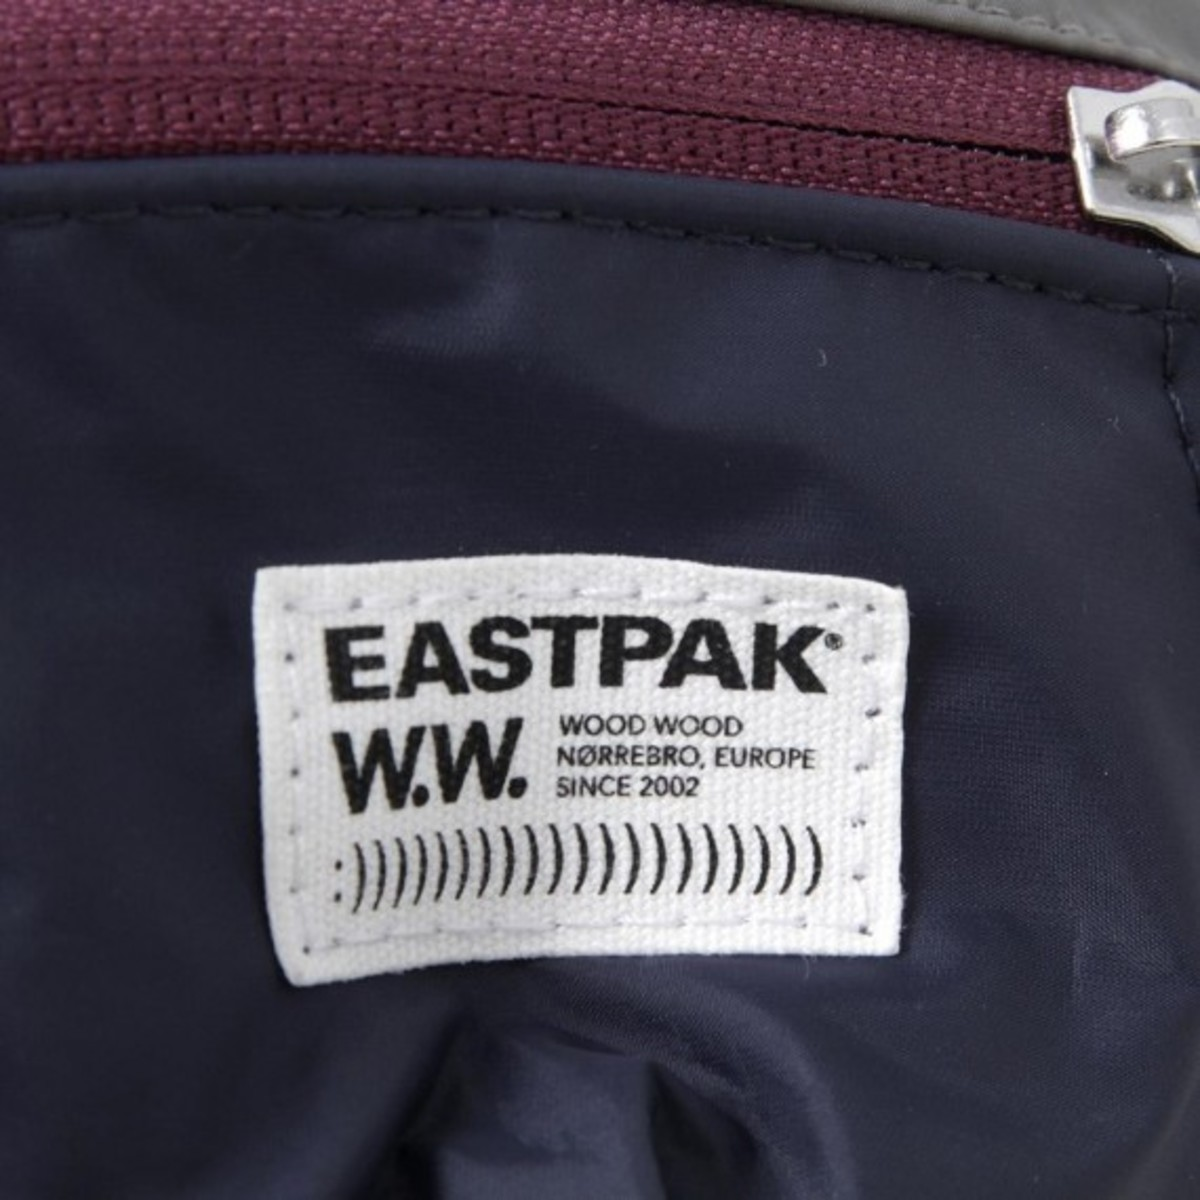 wood-wood-eastpak-collection-available-24